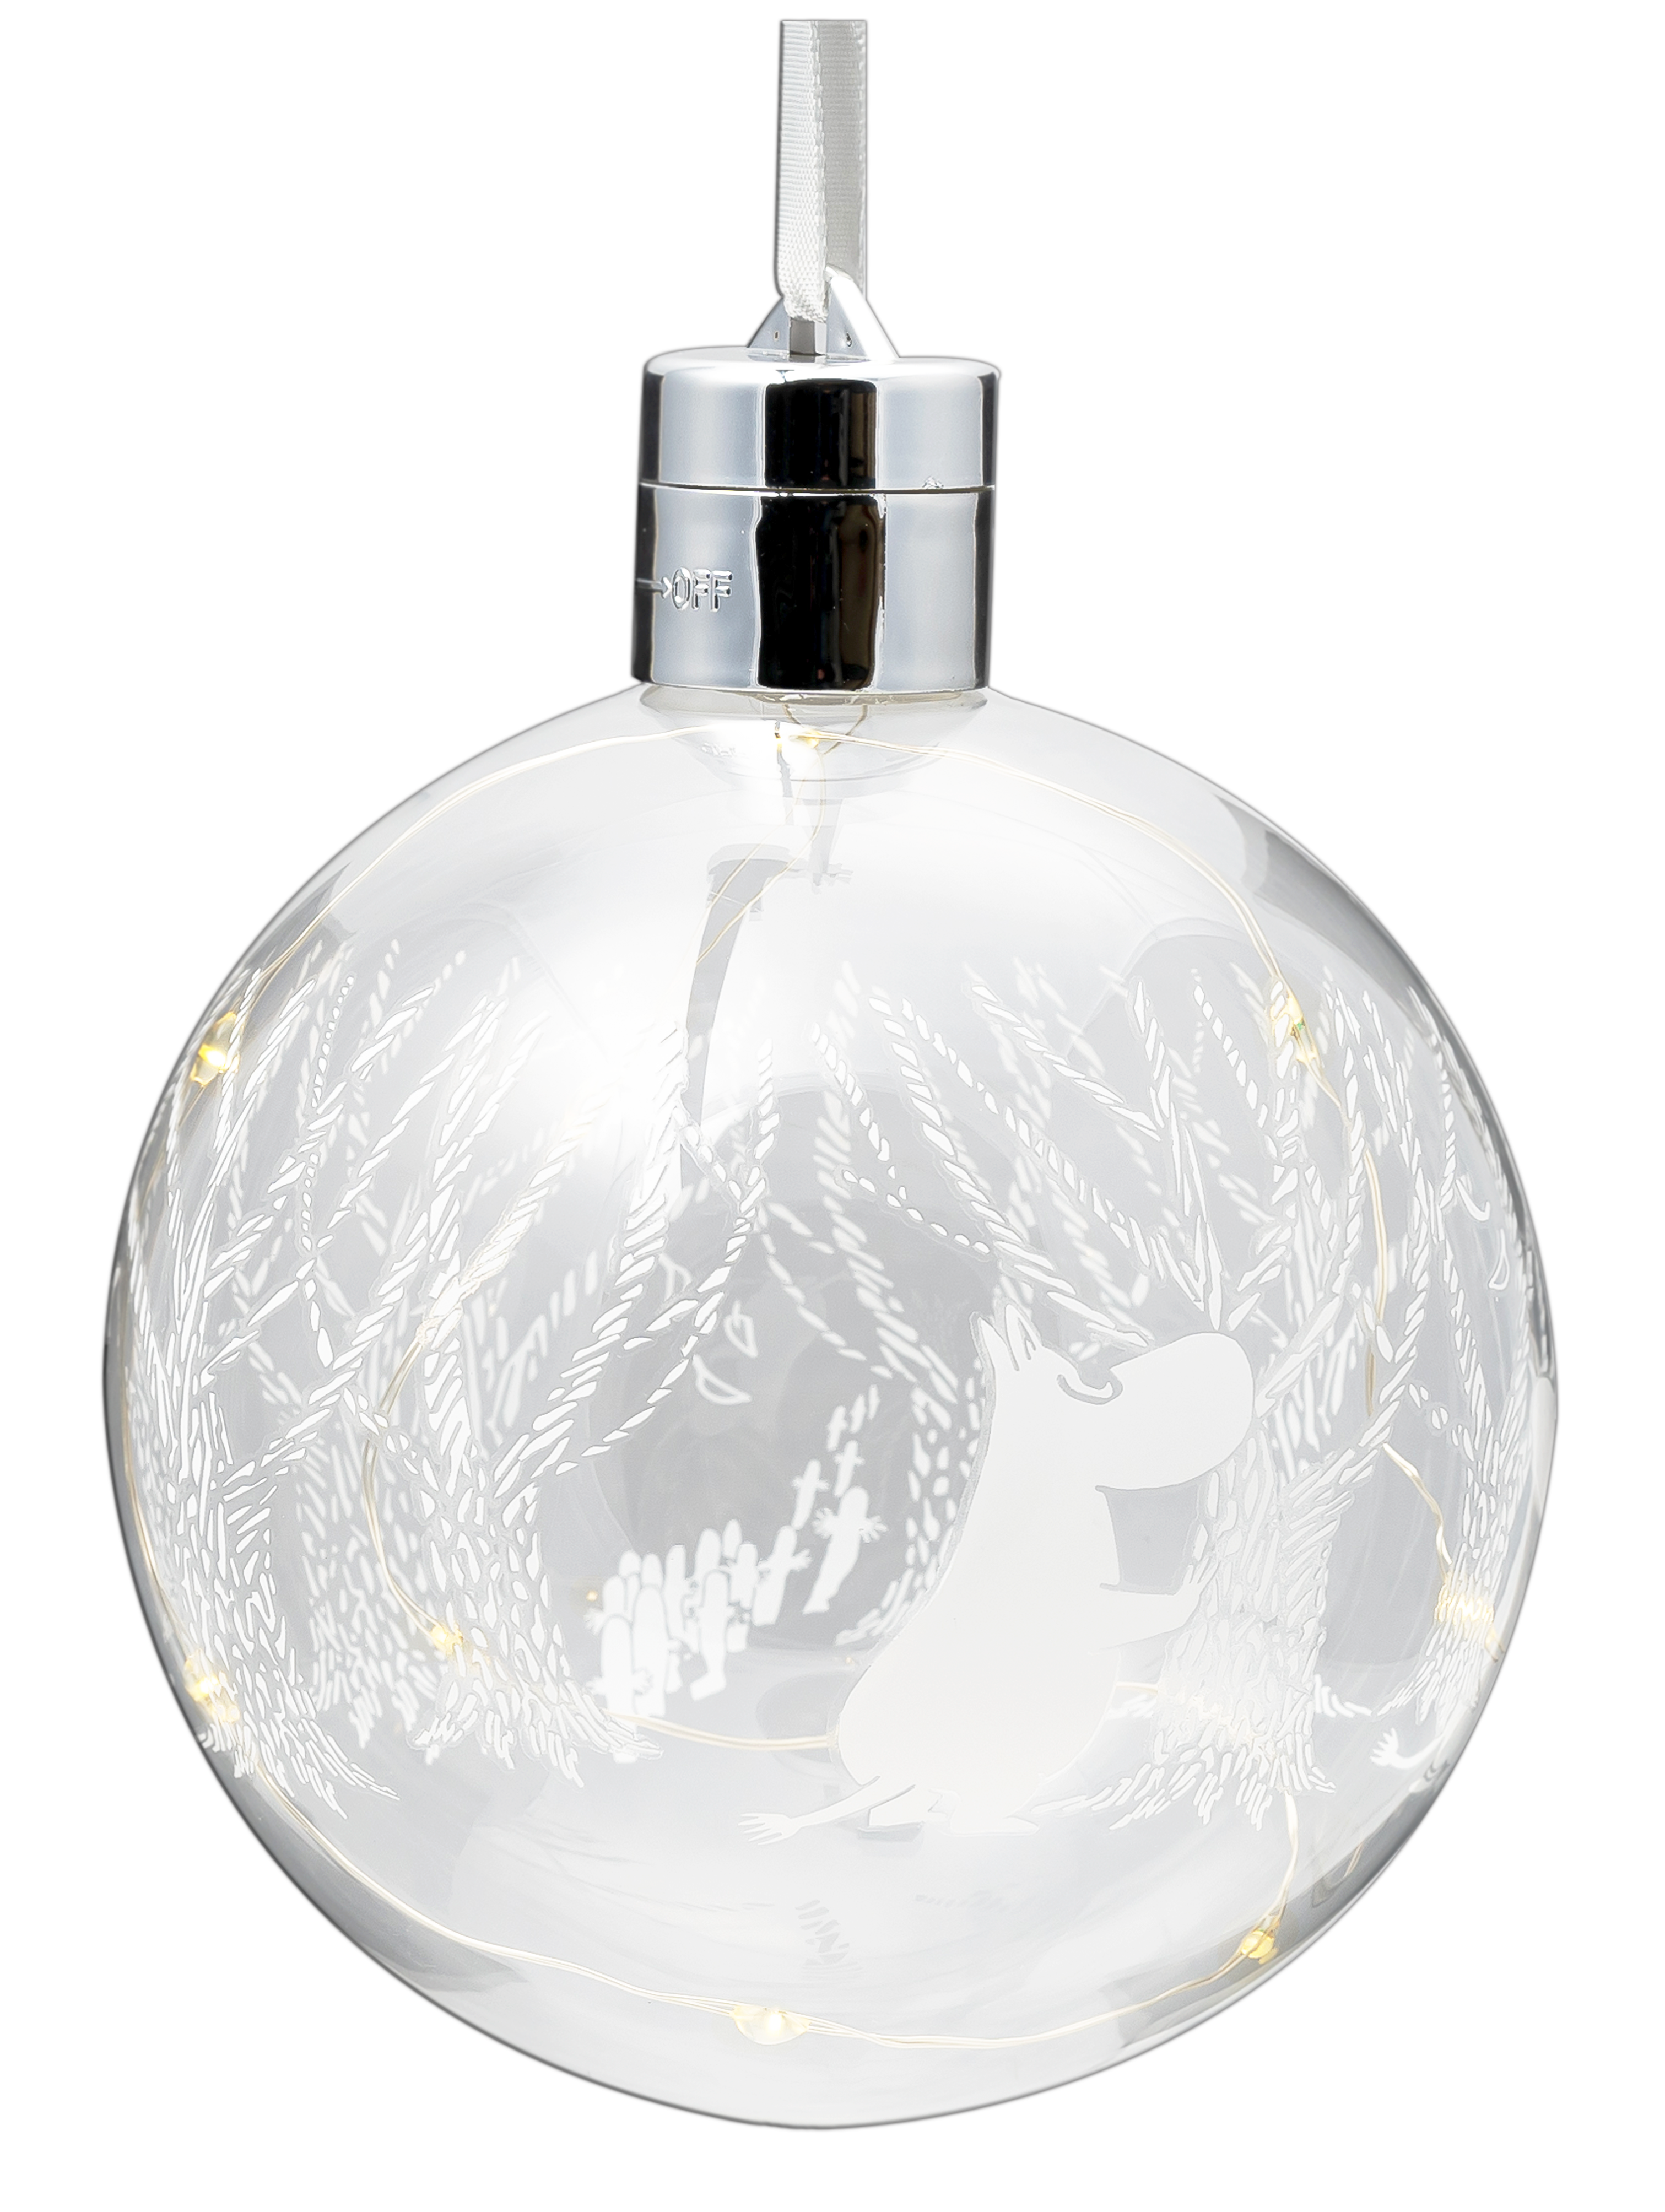 Moomin by Muurla In the Woods LED decoration ball 11 cm